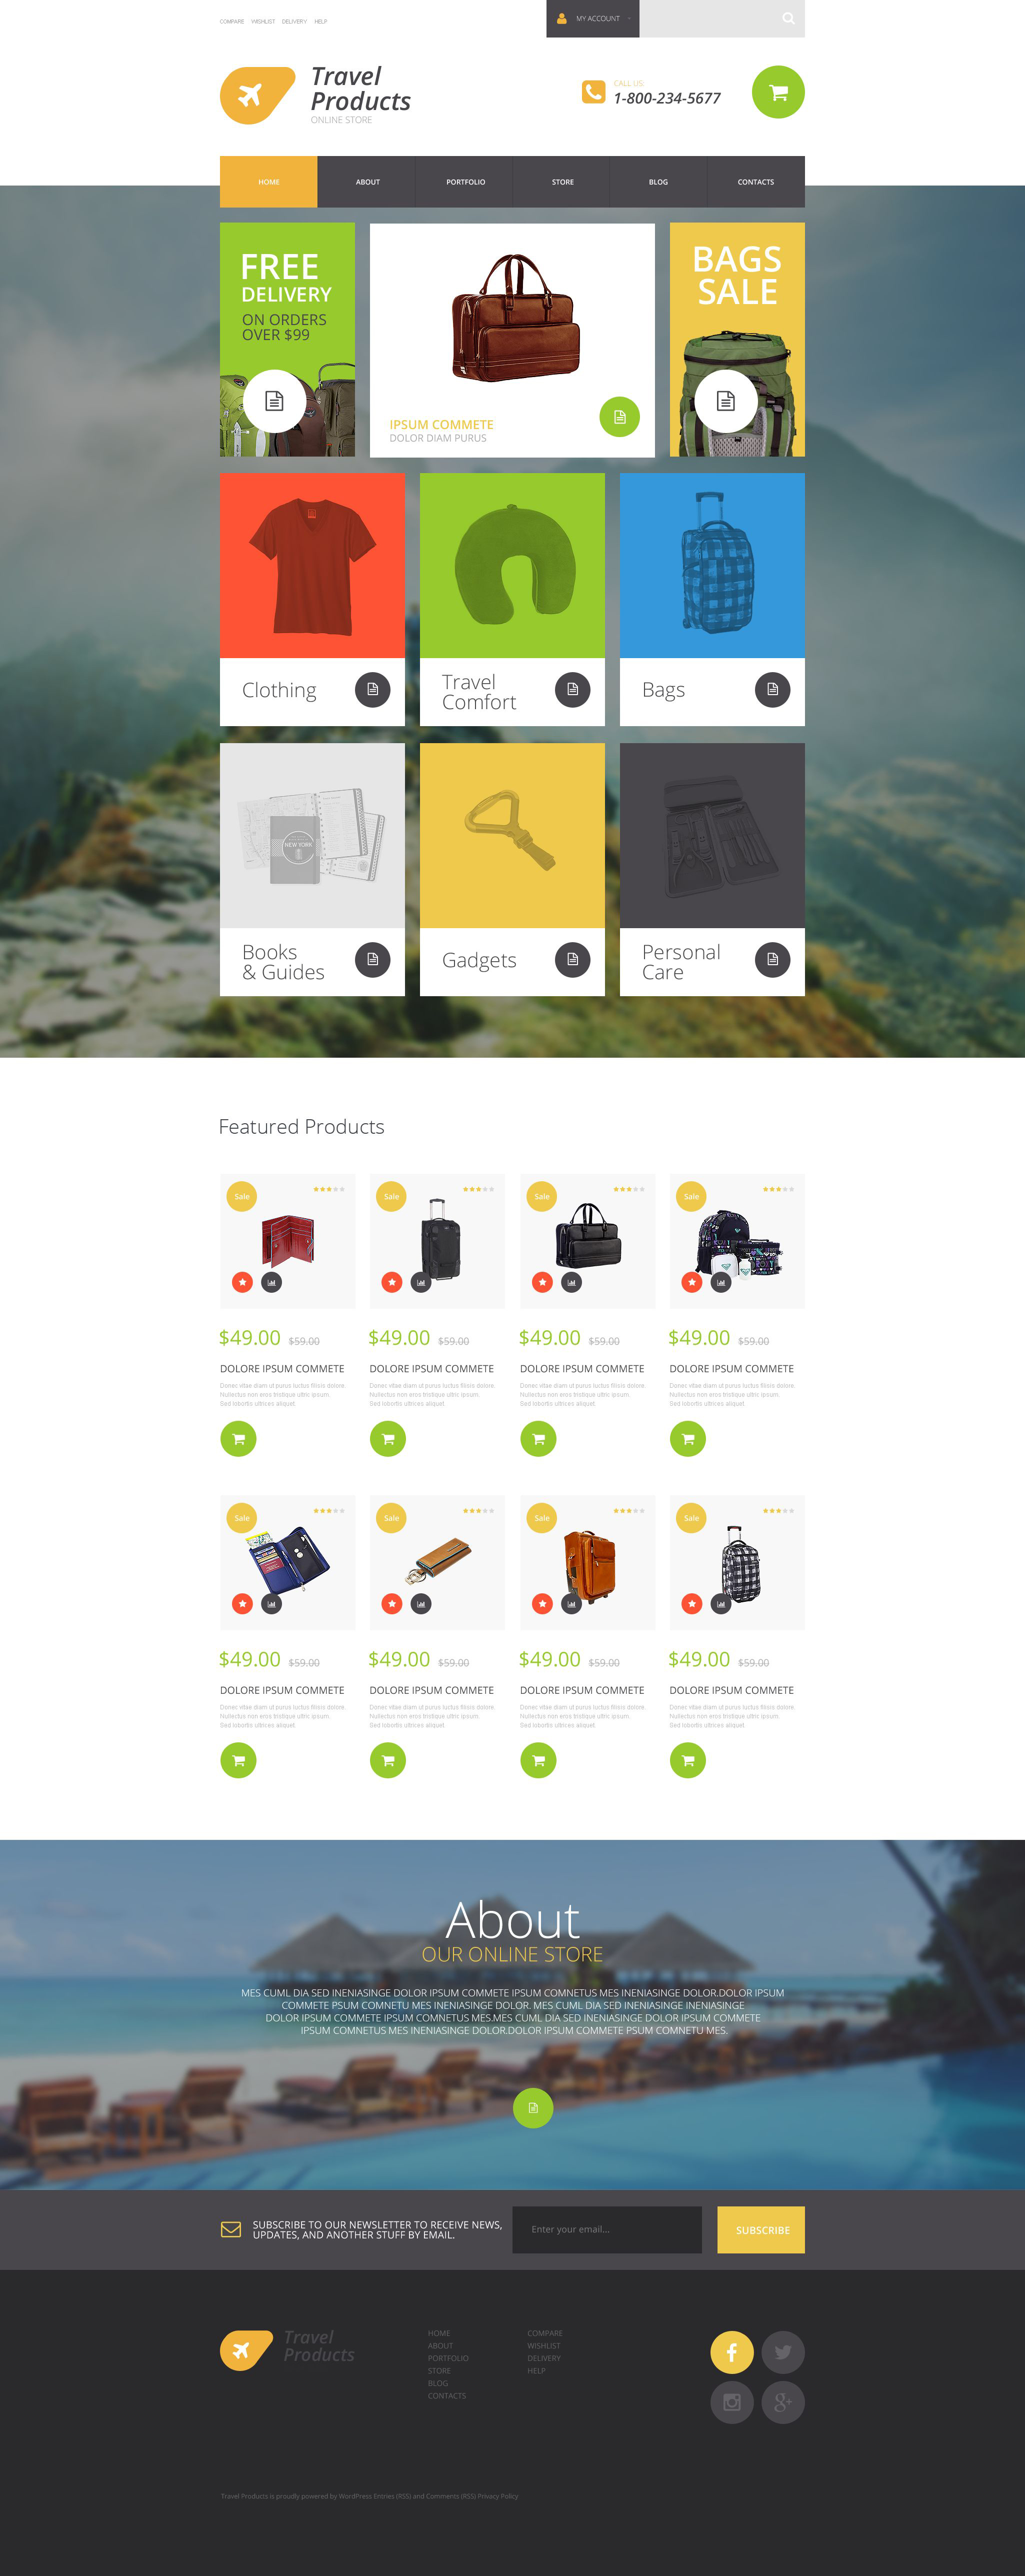 Travel Products Store WooCommerce Theme